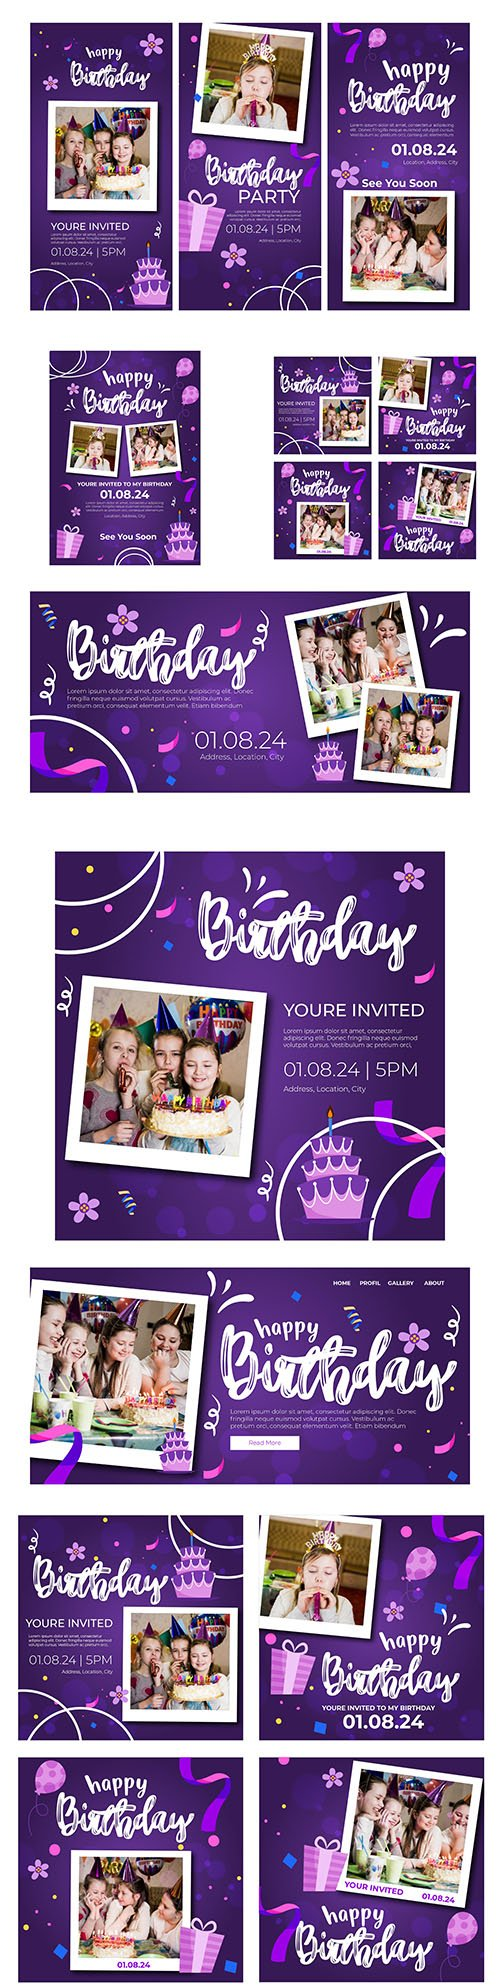 Children's birthday banner and instagram posts